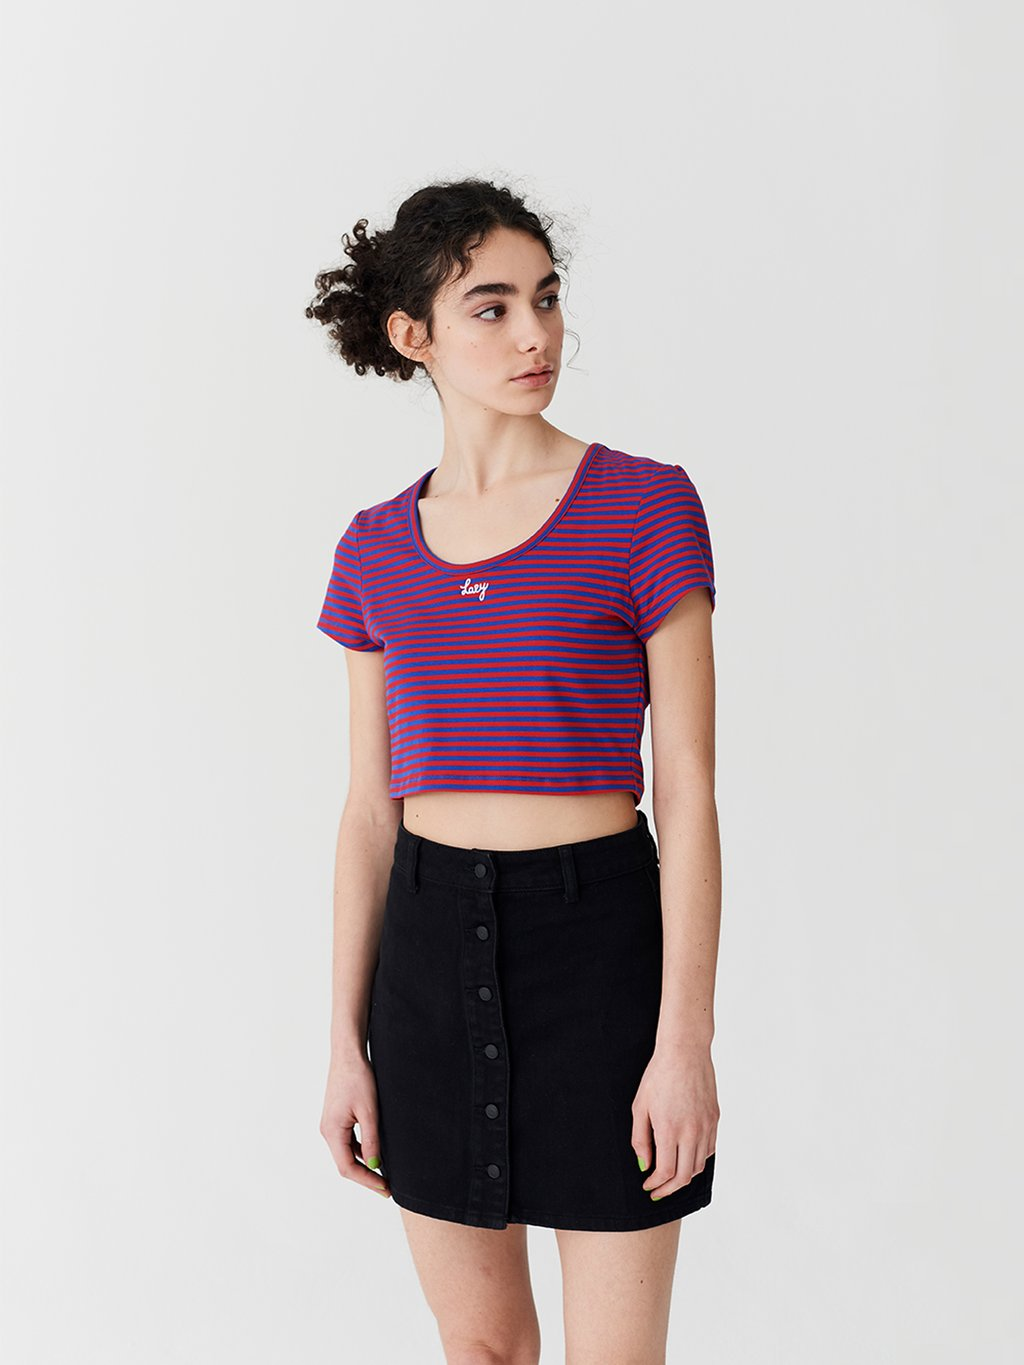 Lazy Stripe Fitted T-Shirt - Multi